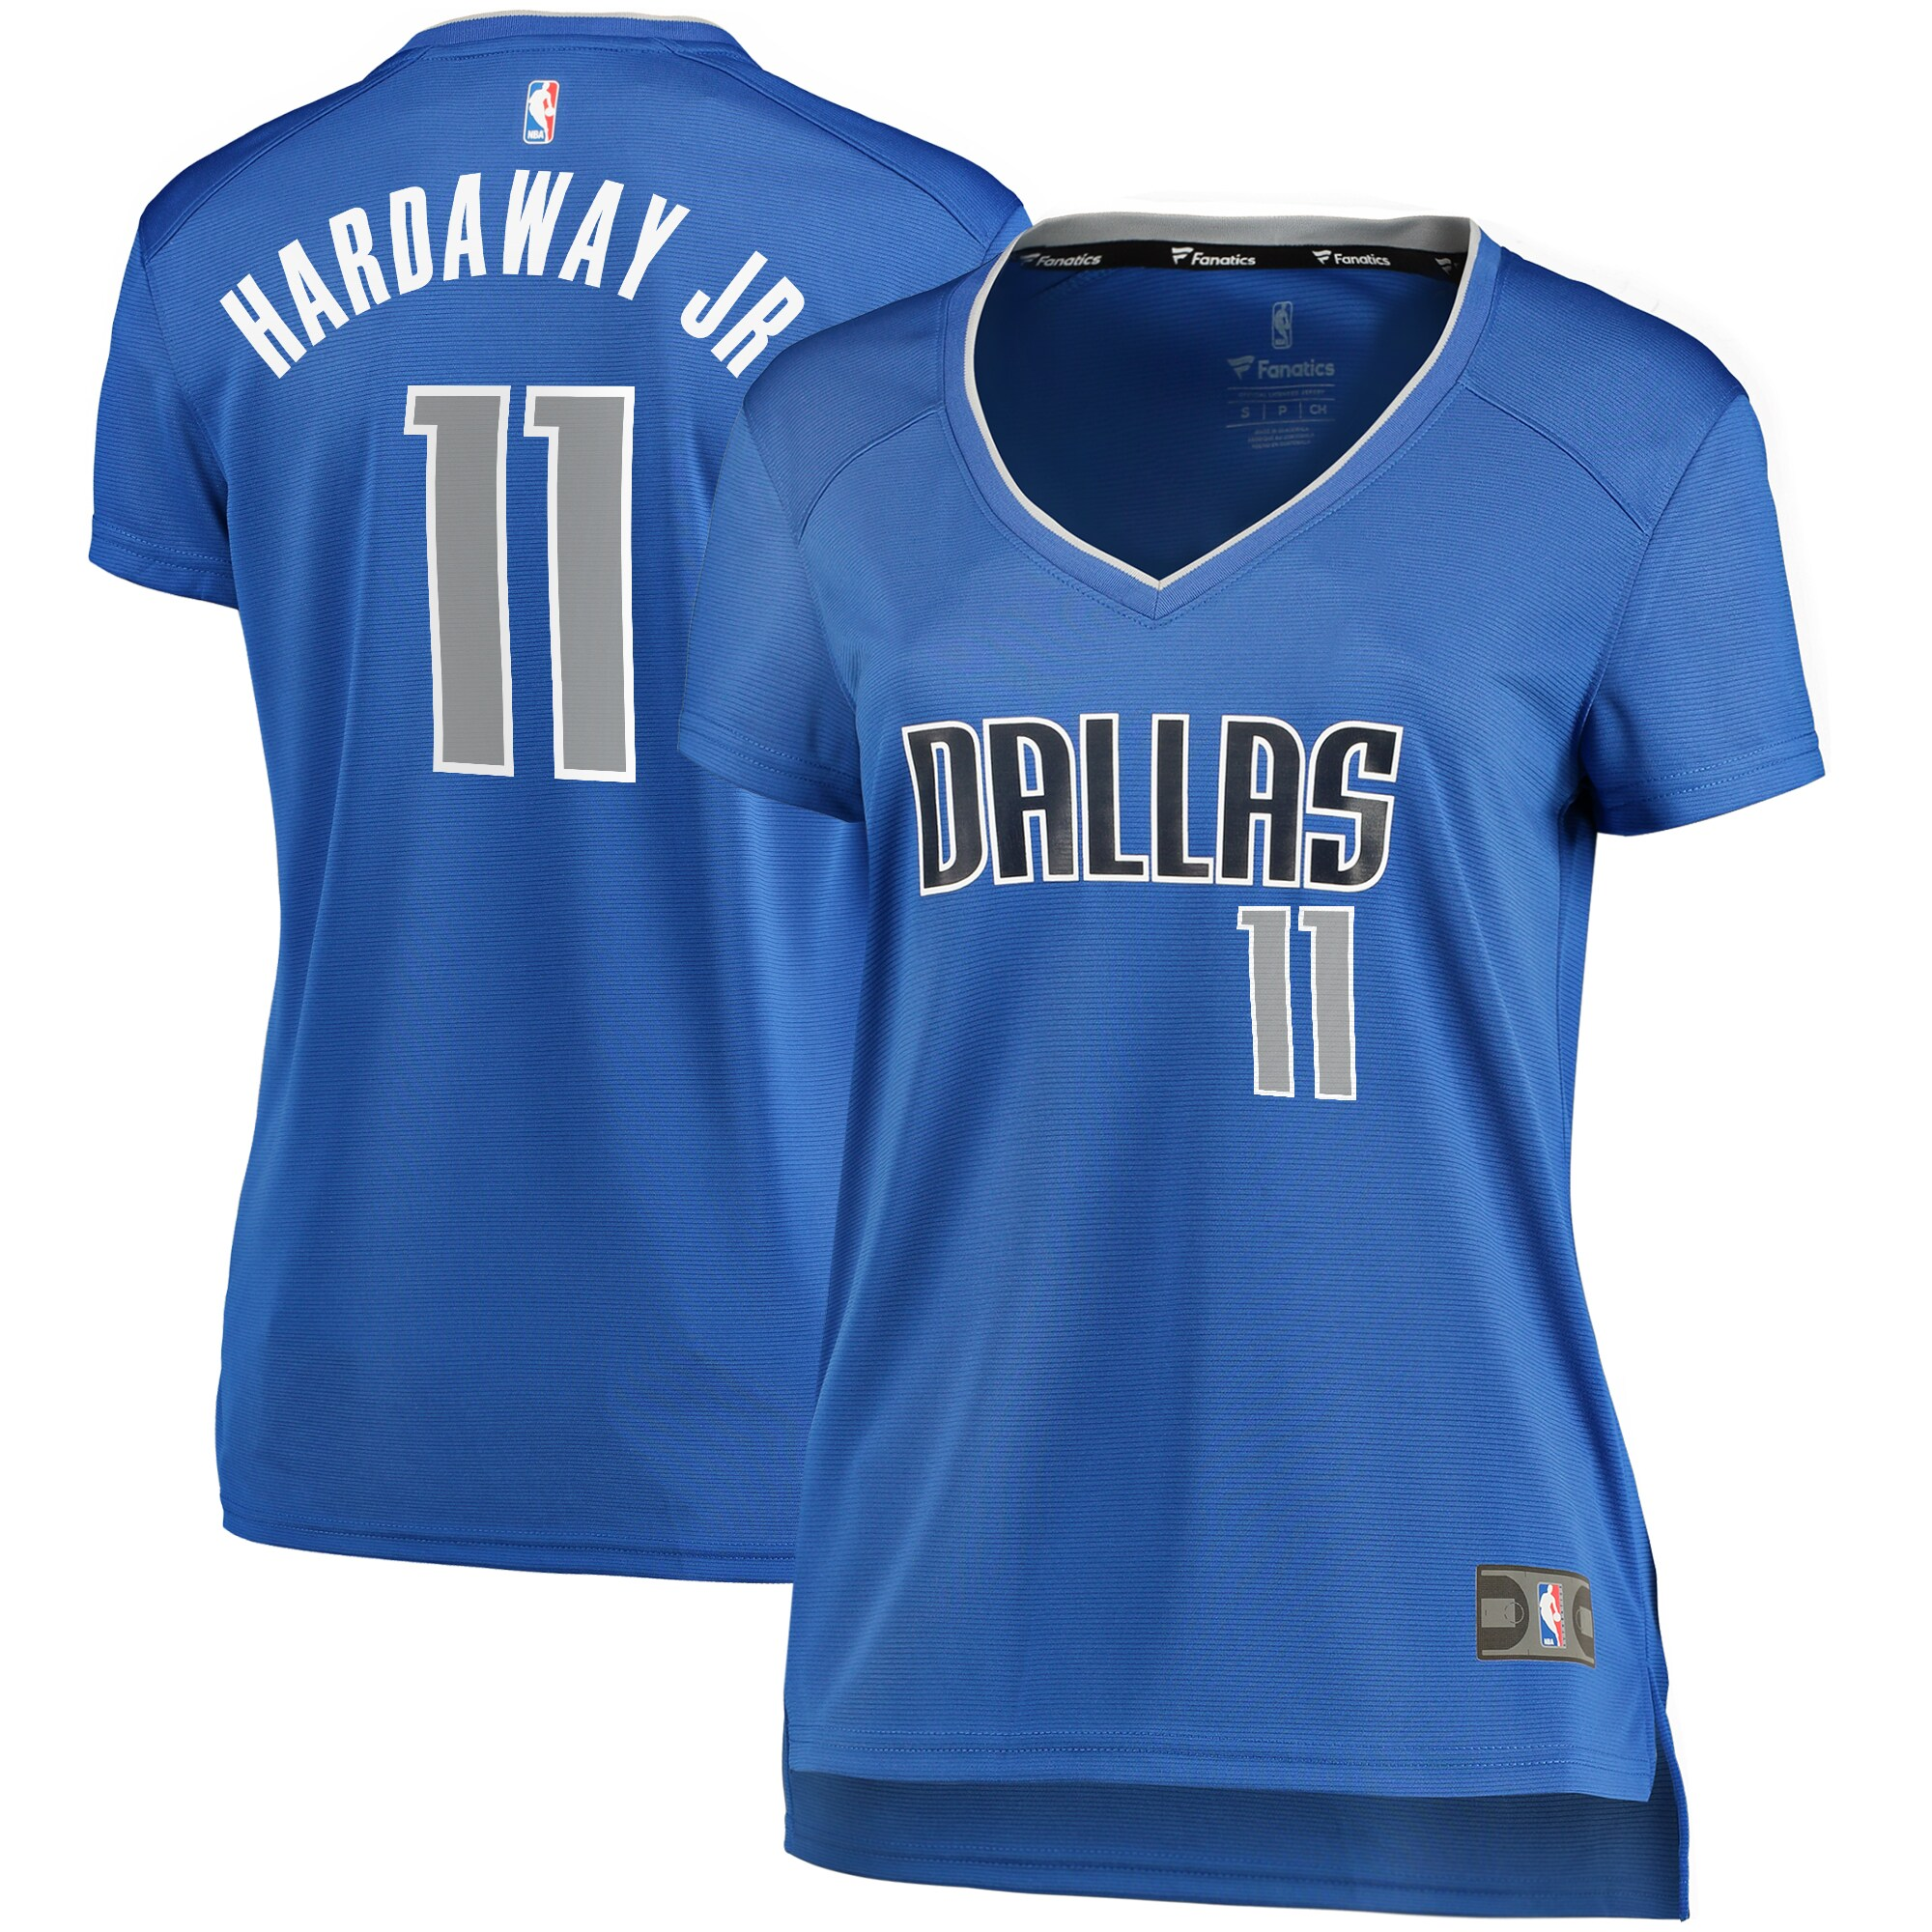 Tim Hardaway Jr. Dallas Mavericks Fanatics Branded Women's Fast Break Player Replica Jersey - Icon Edition - Blue